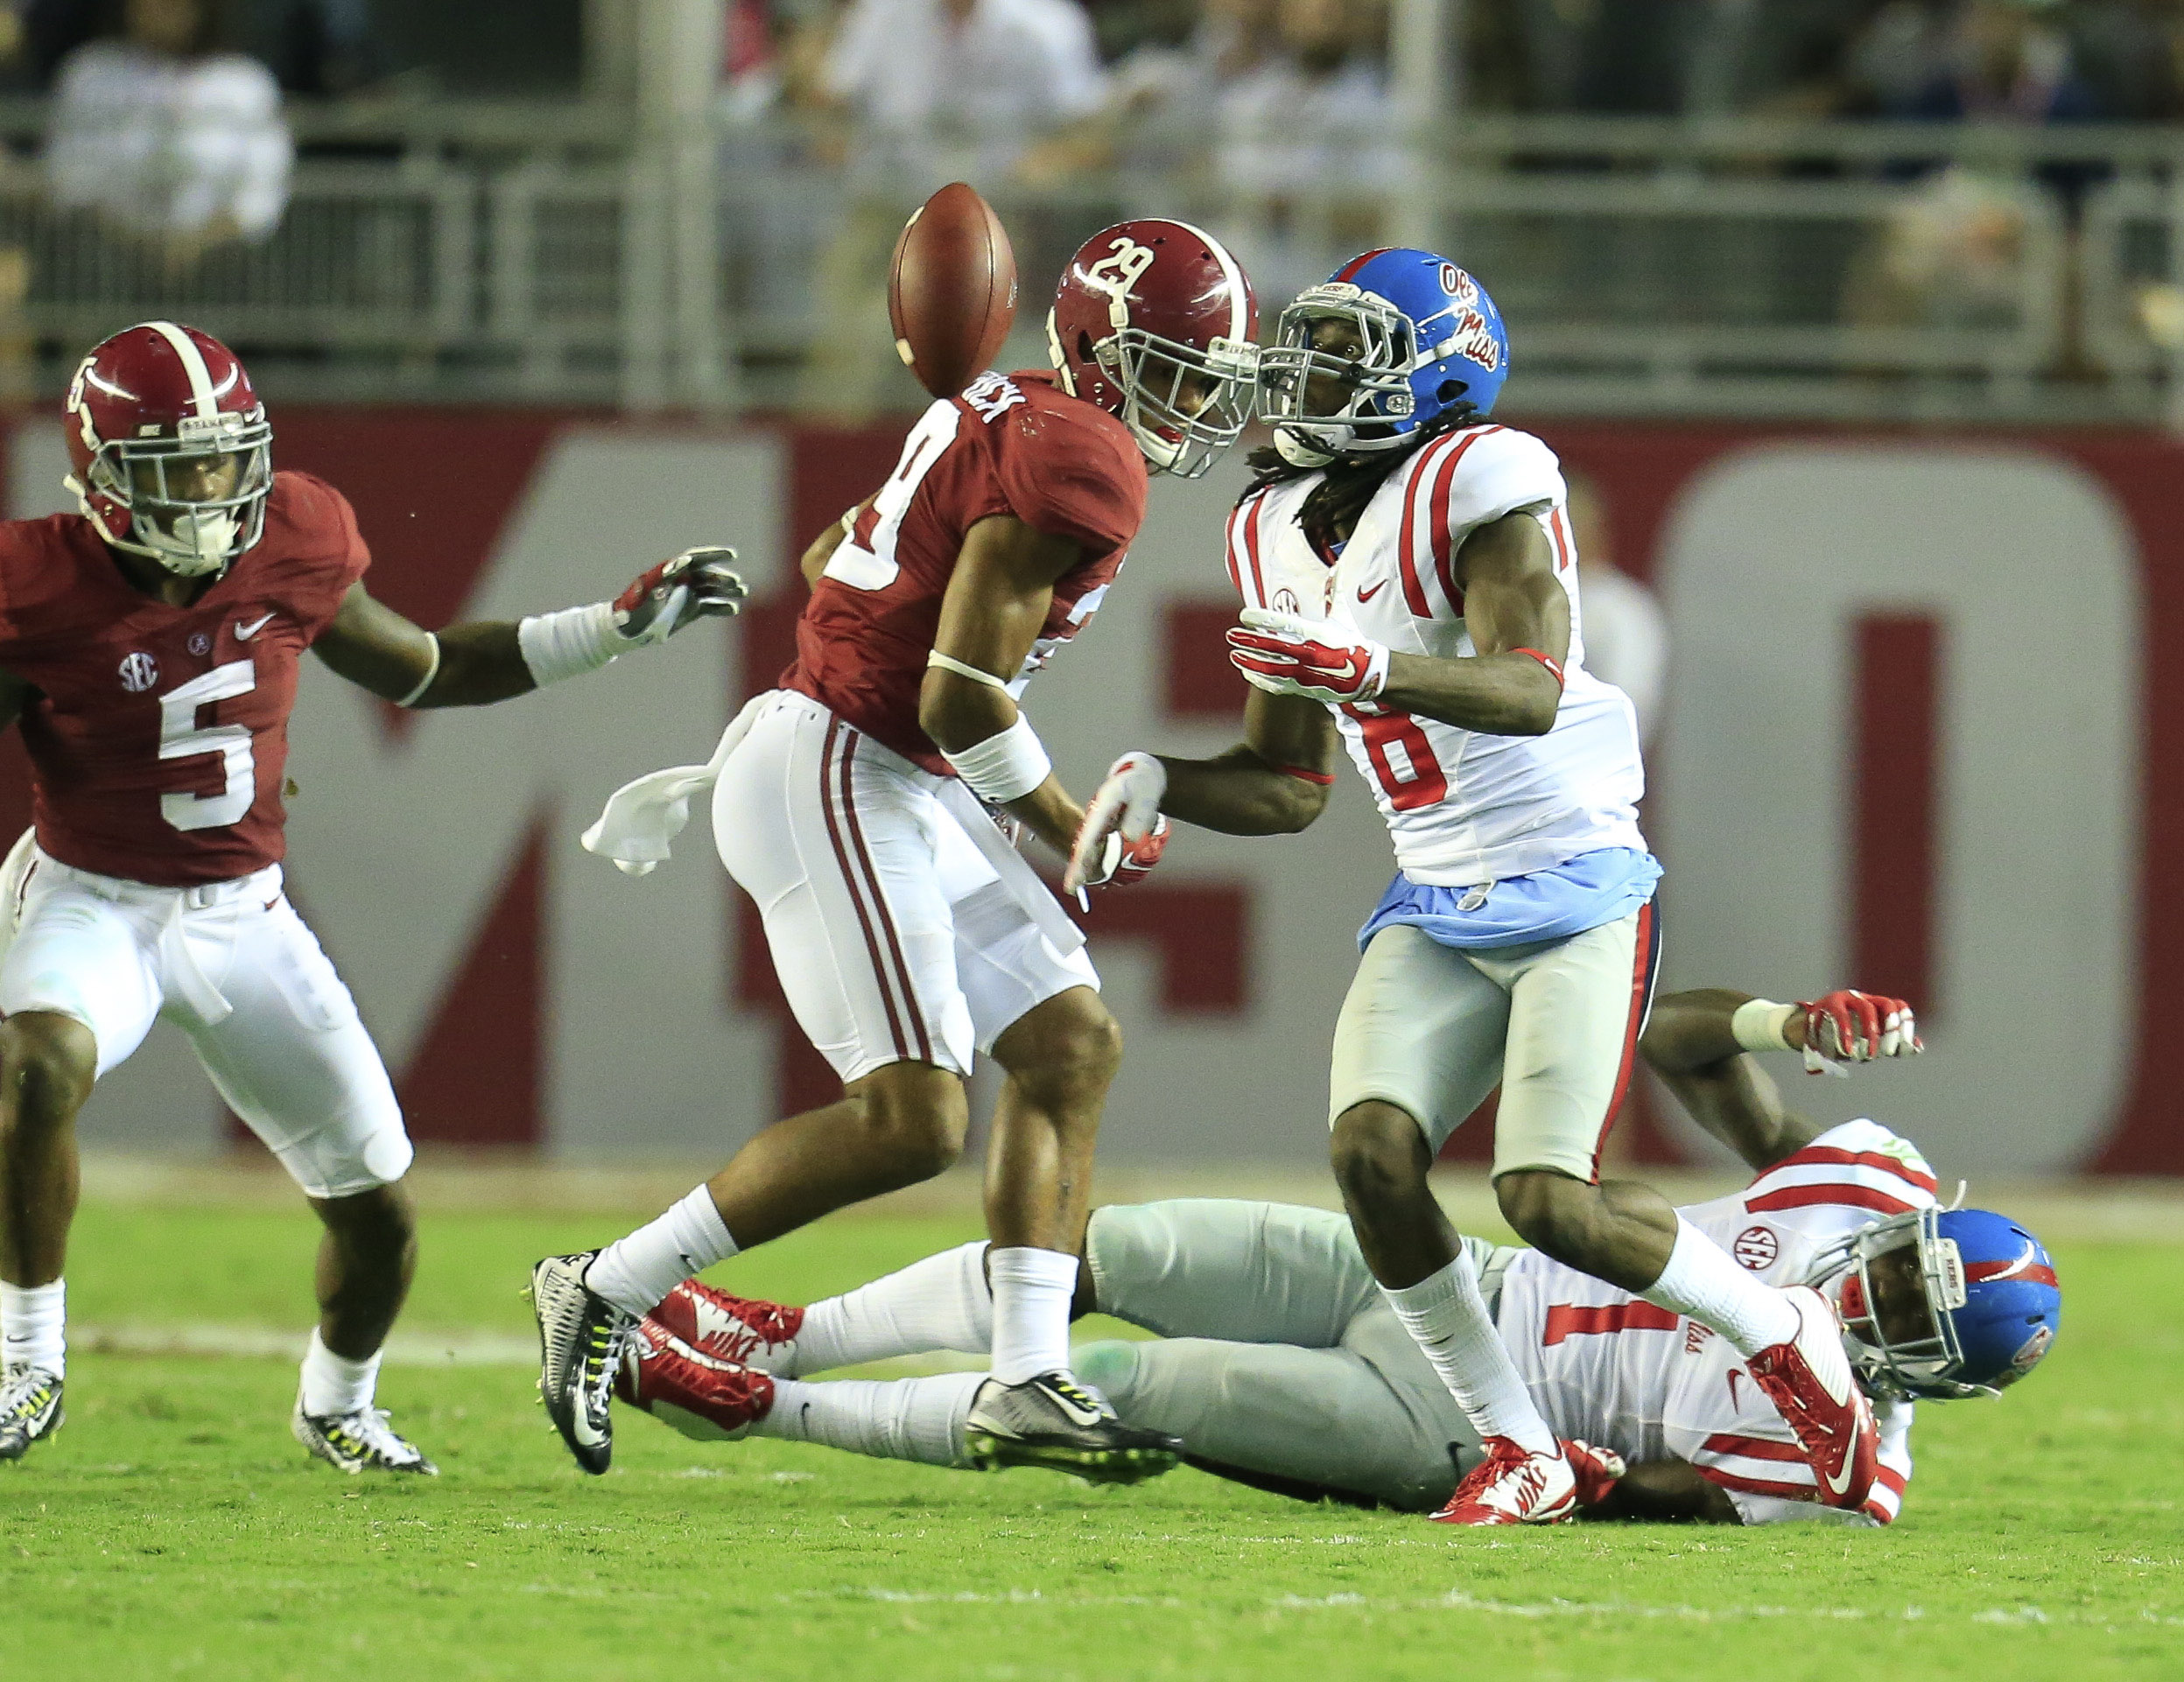 Ole Miss WR Quincy Adeboyejo's miracle TD proved it was the Rebels' night in Tuscaloosa.